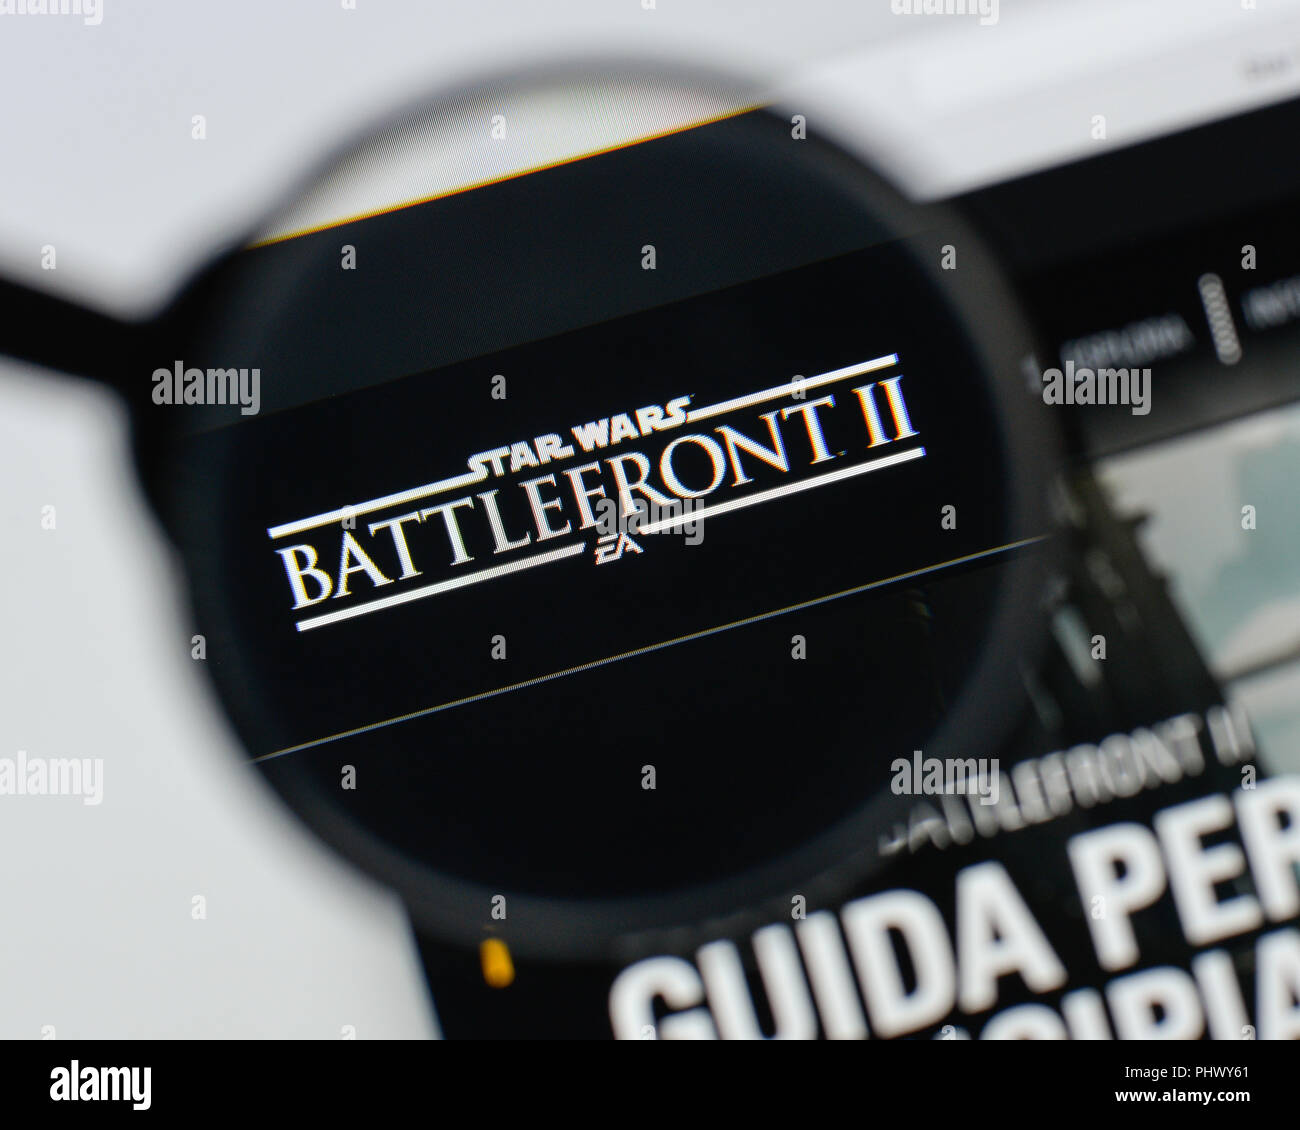 Milan, Italy - August 20, 2018: Star Wars Battlefront II website homepage. Star Wars Battlefront II logo visible. - Stock Image